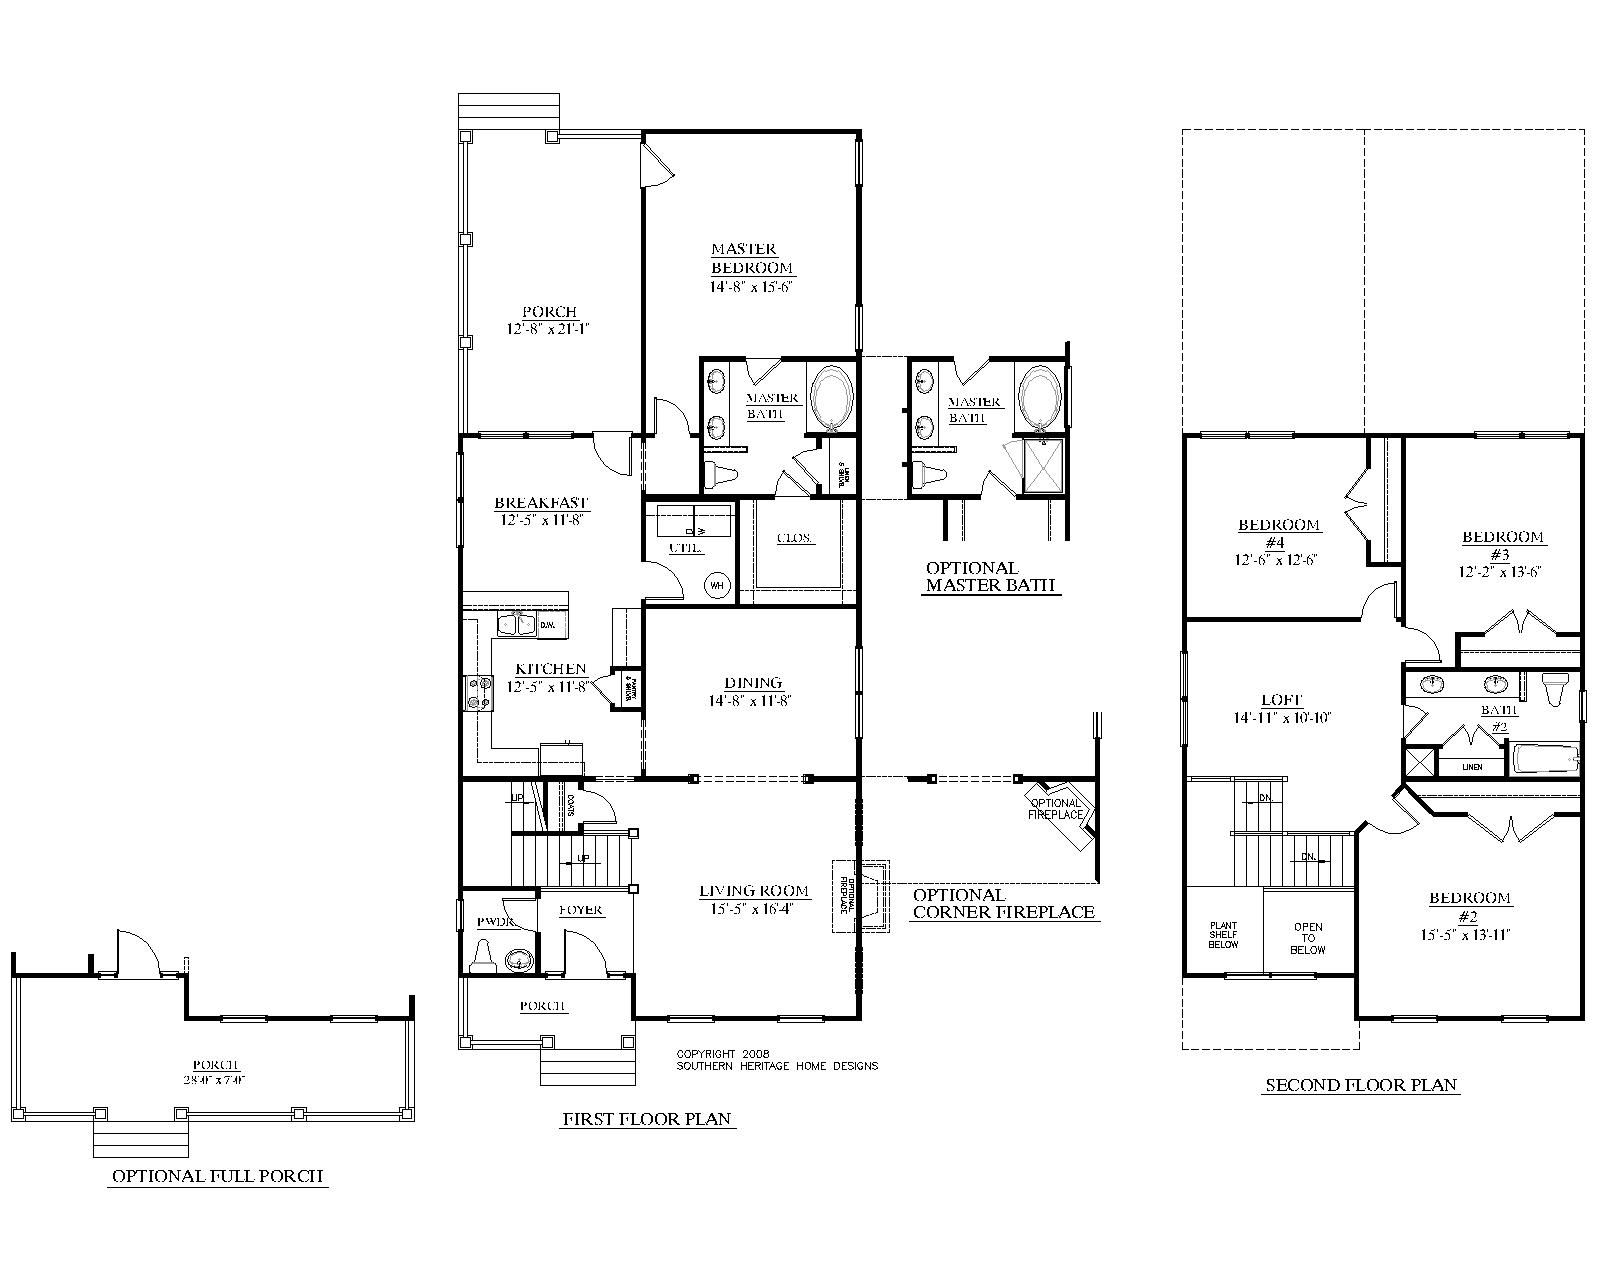 House plan 2402 blair floor plan 2402 square feet 28 0 wide by house plan 2402 blair floor plan 2402 square feet wide by deep 4 baths formal dining room optional full porch jameslax Image collections